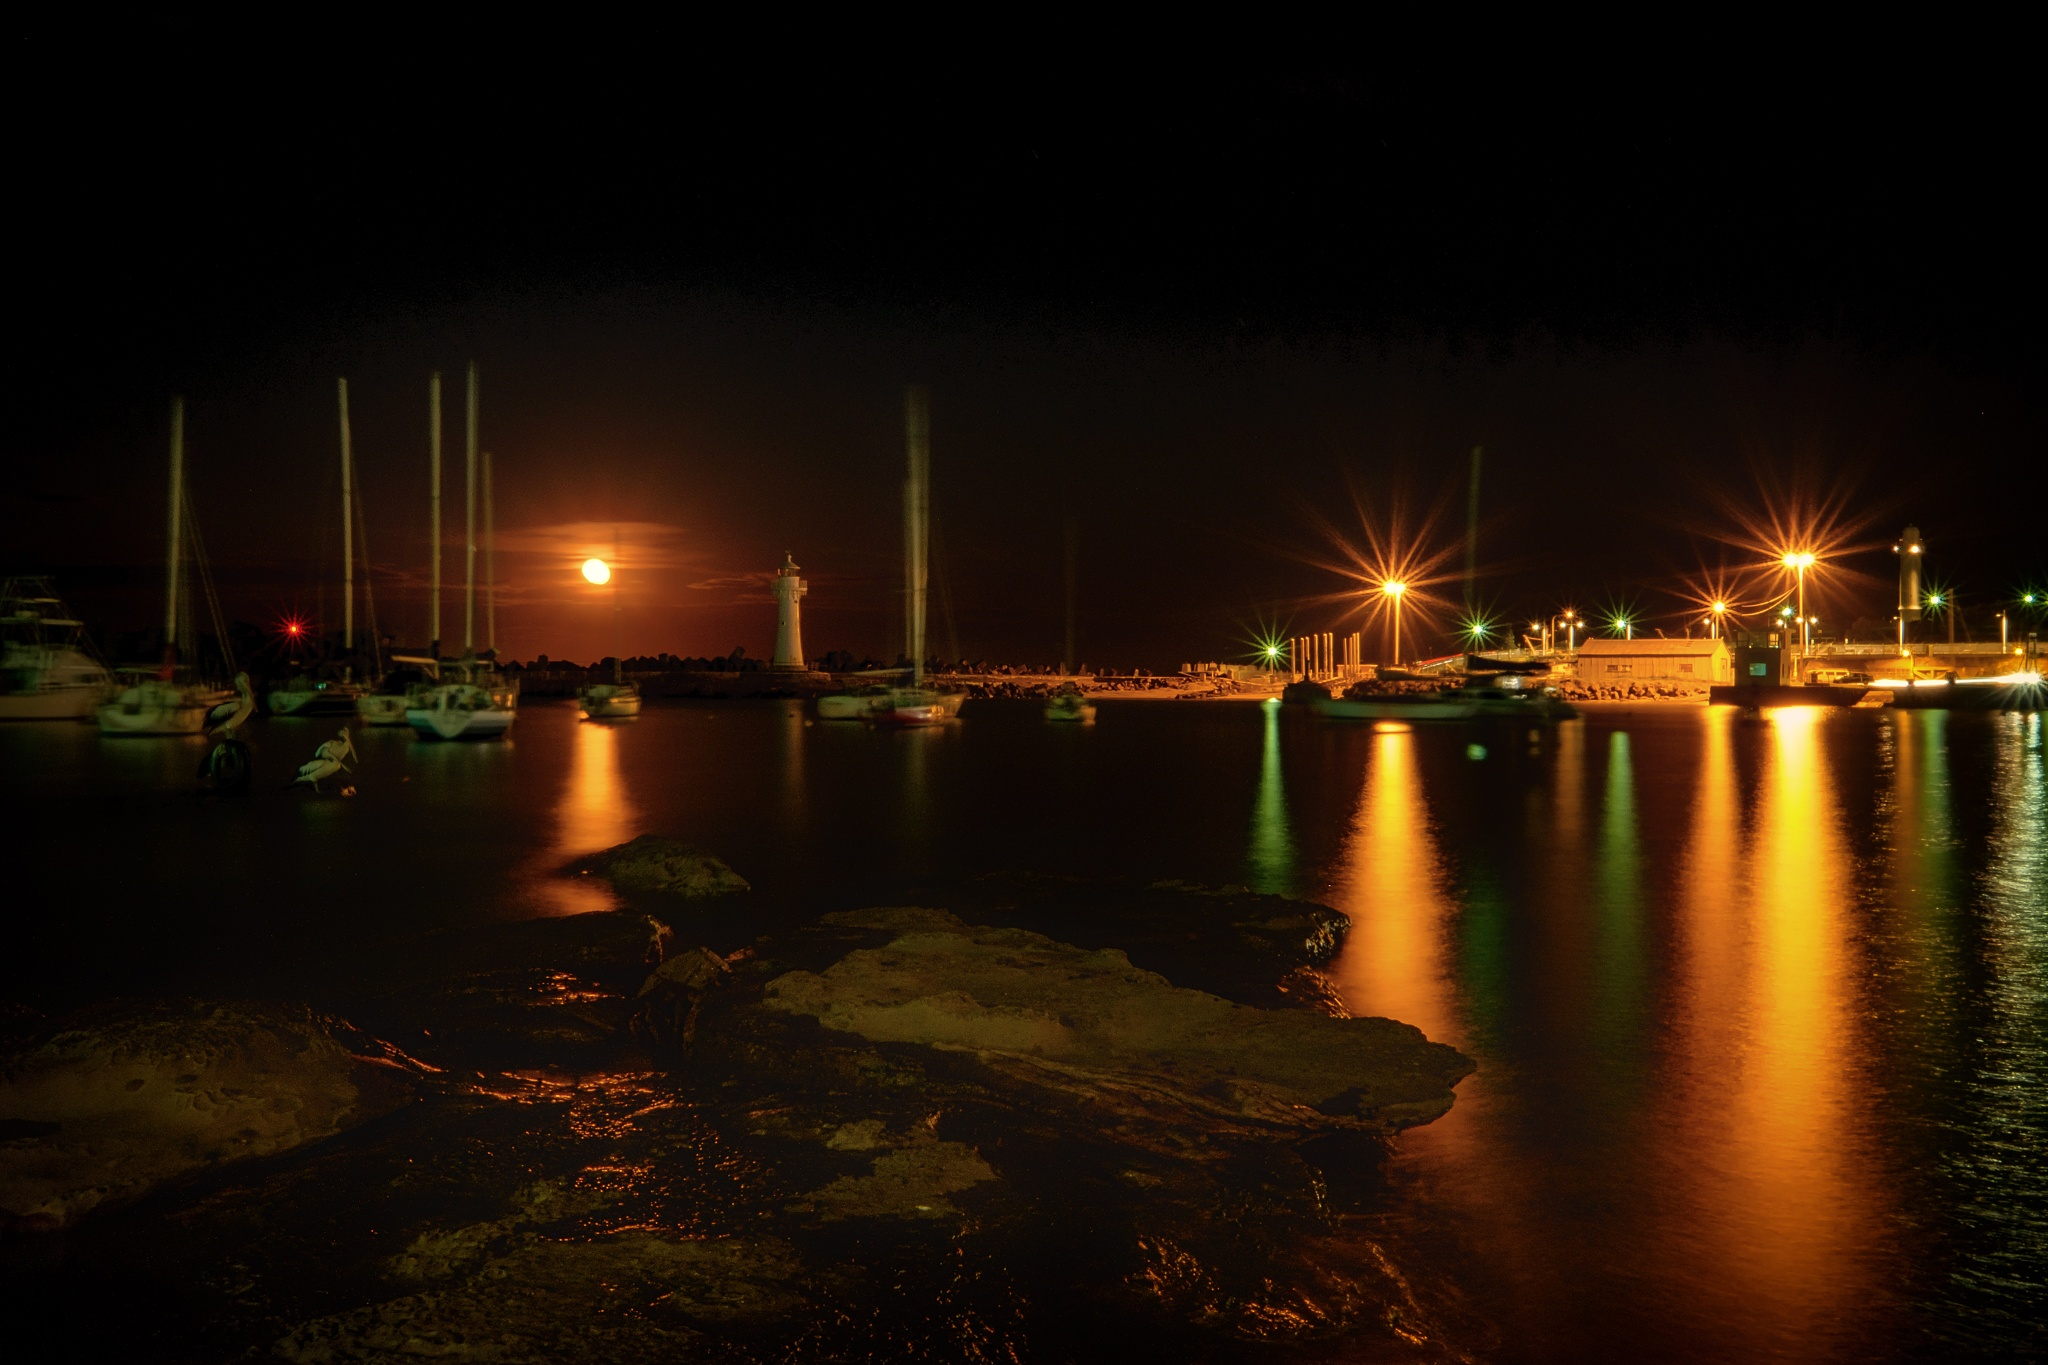 Wollongong Harbour under Lights by Peter Medbury